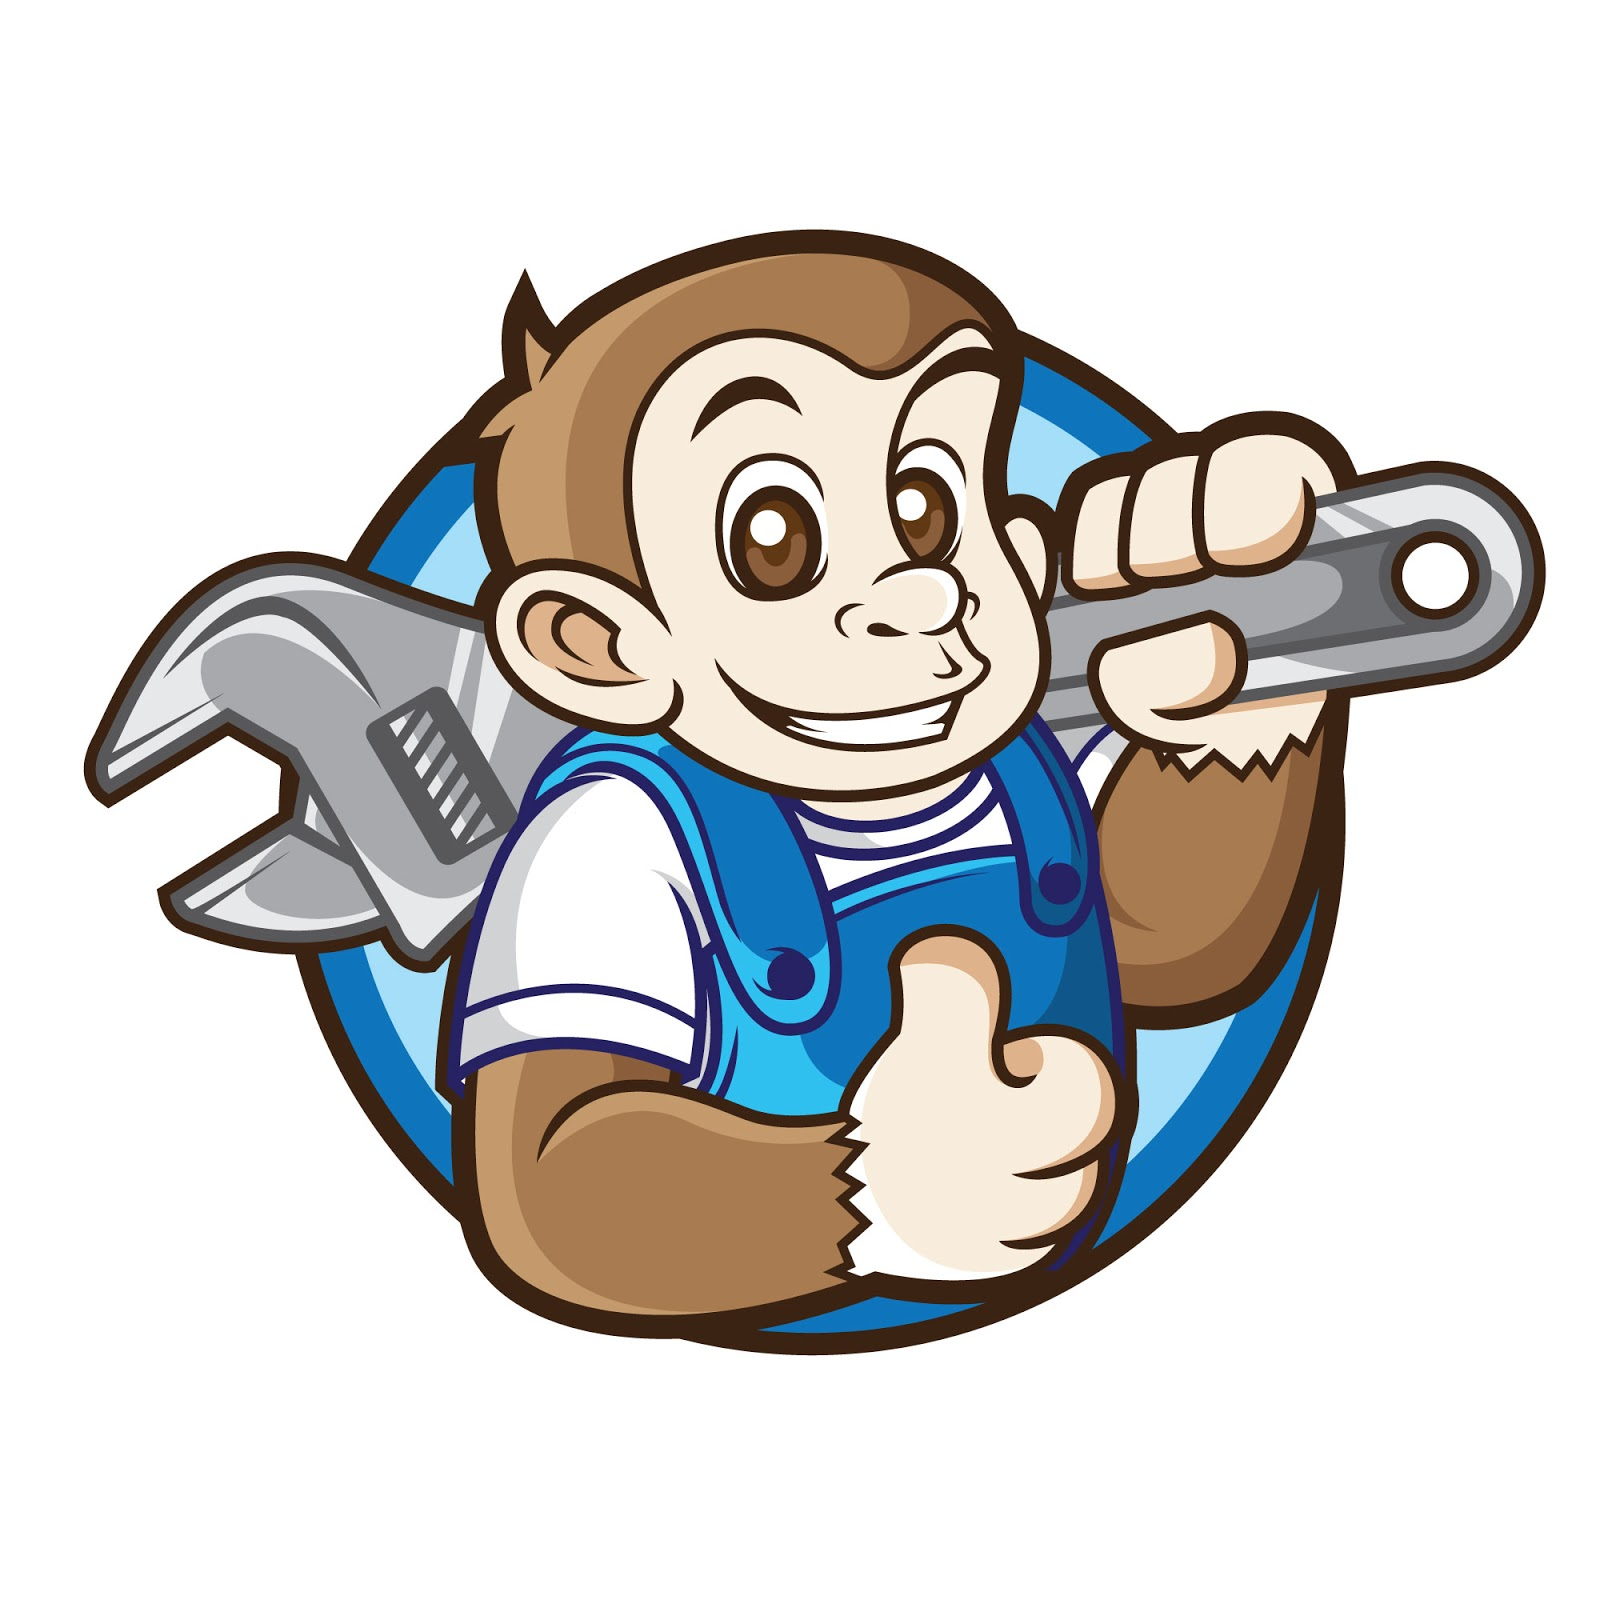 Mechanic Mascot Logo Free Download Vector CDR, AI, EPS and PNG Formats